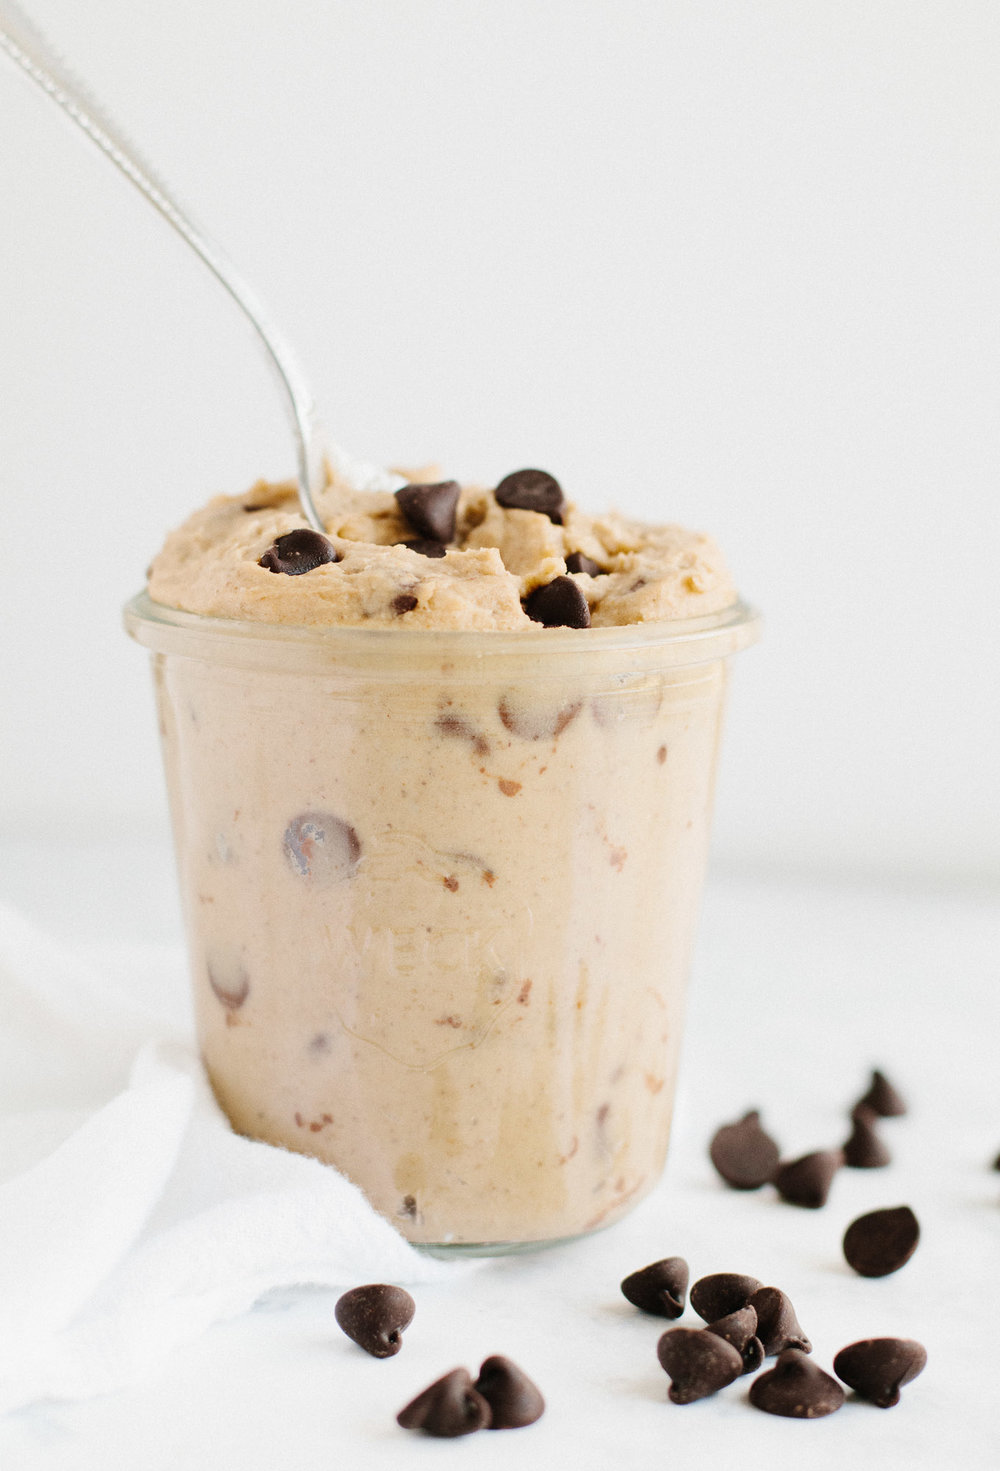 Chickpea-Cookie-Dough-3-of-12.jpg